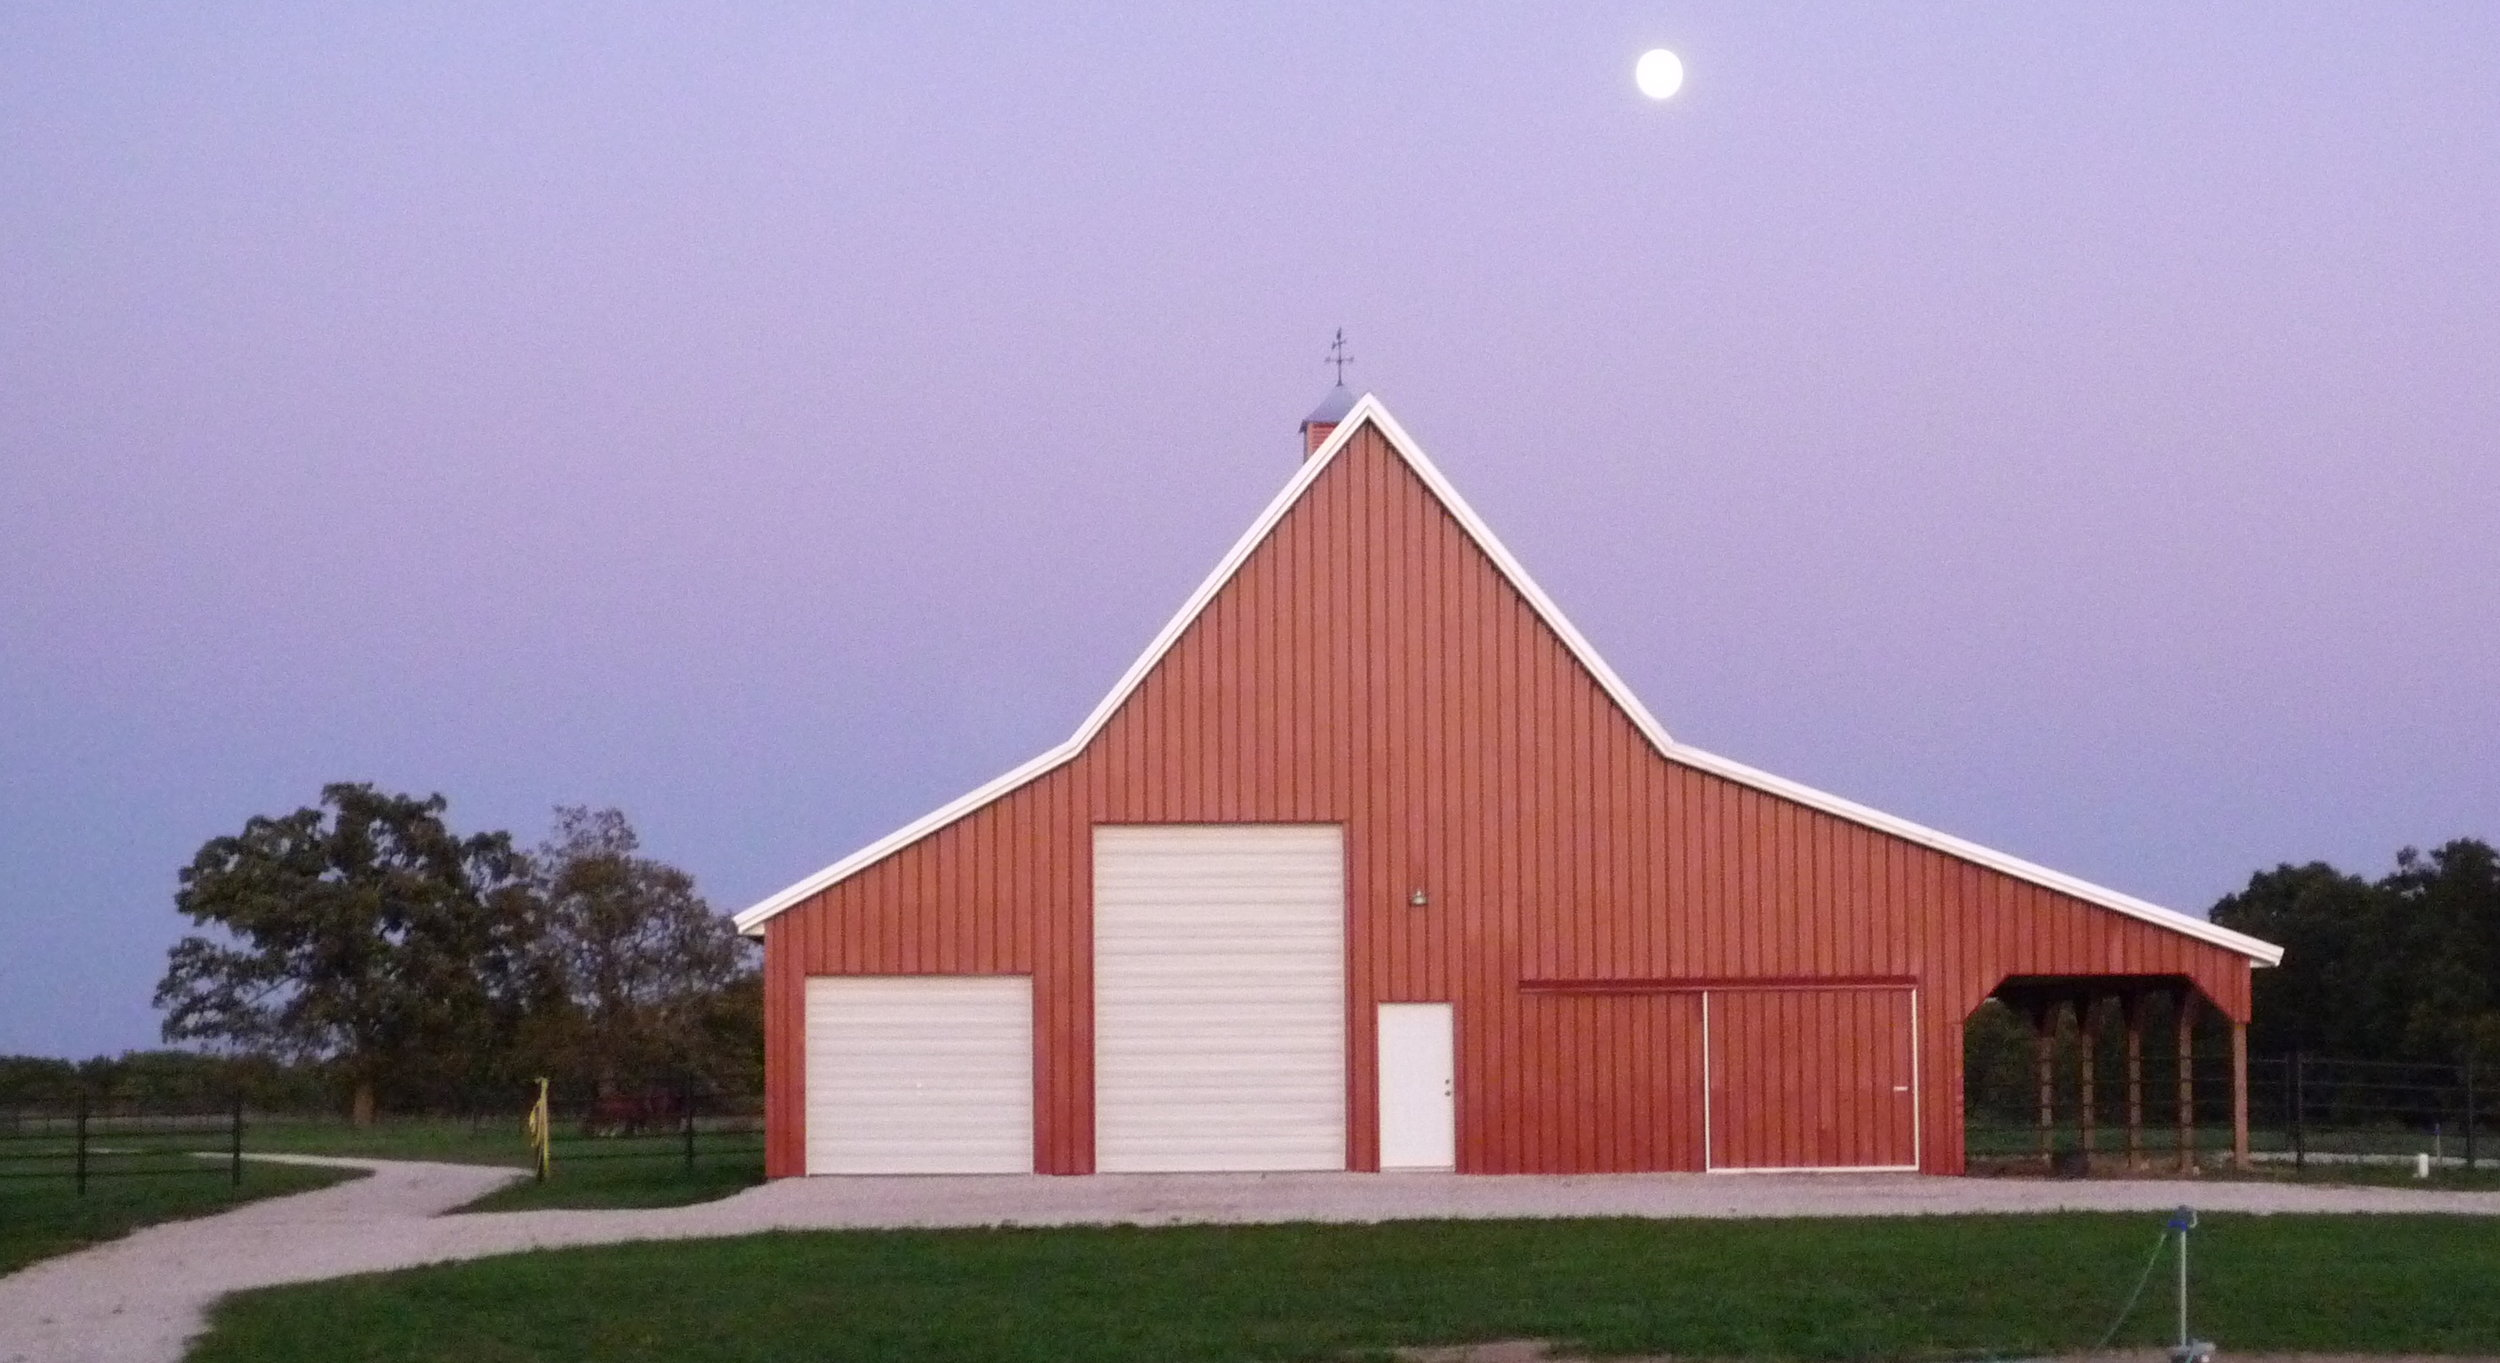 Barn by Moonlight